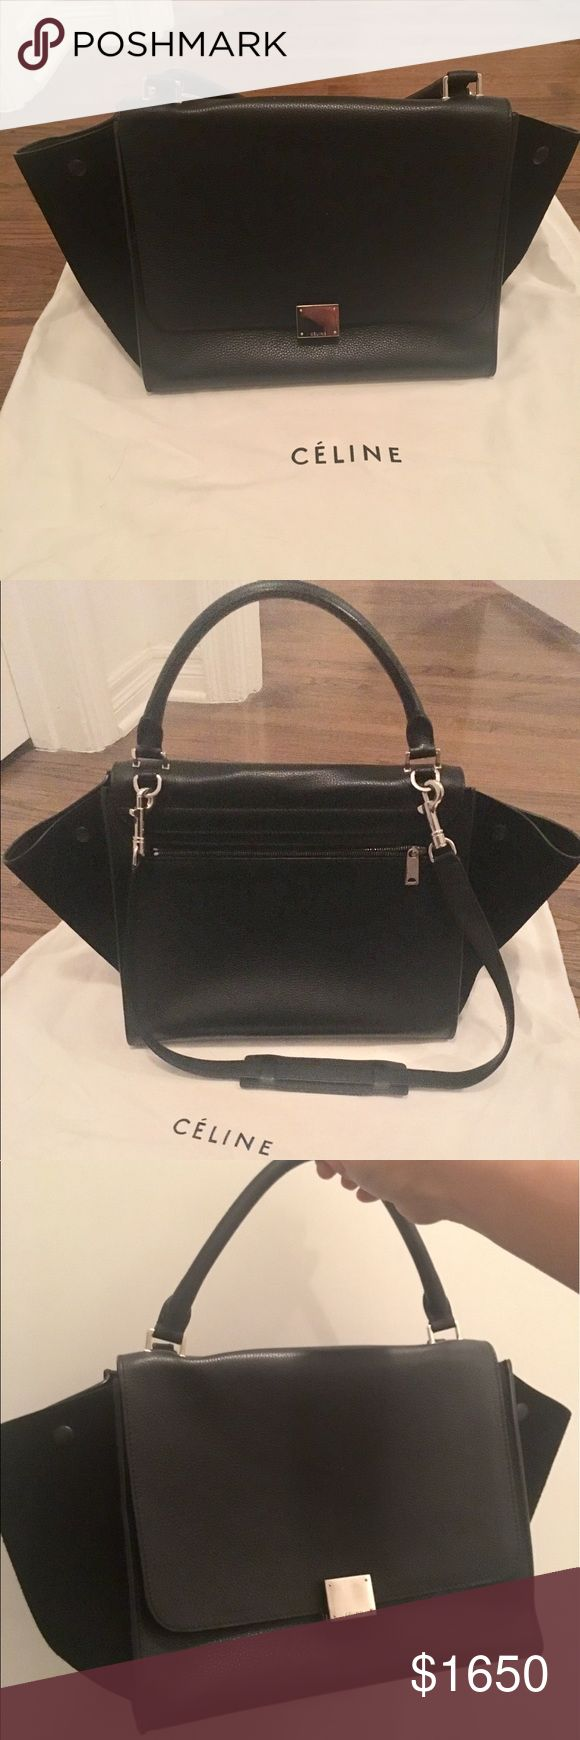 Celine Medium Trapeze Black Leather and Suede Bag Medium Trapeze bag from Celine, 2012 collection by Phoebe Philo. Black pebbled leather, tonal Suede trim, silver tone hardware, exterior back zipper pocket, snap expansion at sides which can be tucked in for a different look, dual slip pockets on interior wall, flip lock closure. Excellent condition, barely used. No visible marks or scratches. Has been stored in its dustbag on a flat surface in my closet. Comes with original dustbag, tags and…